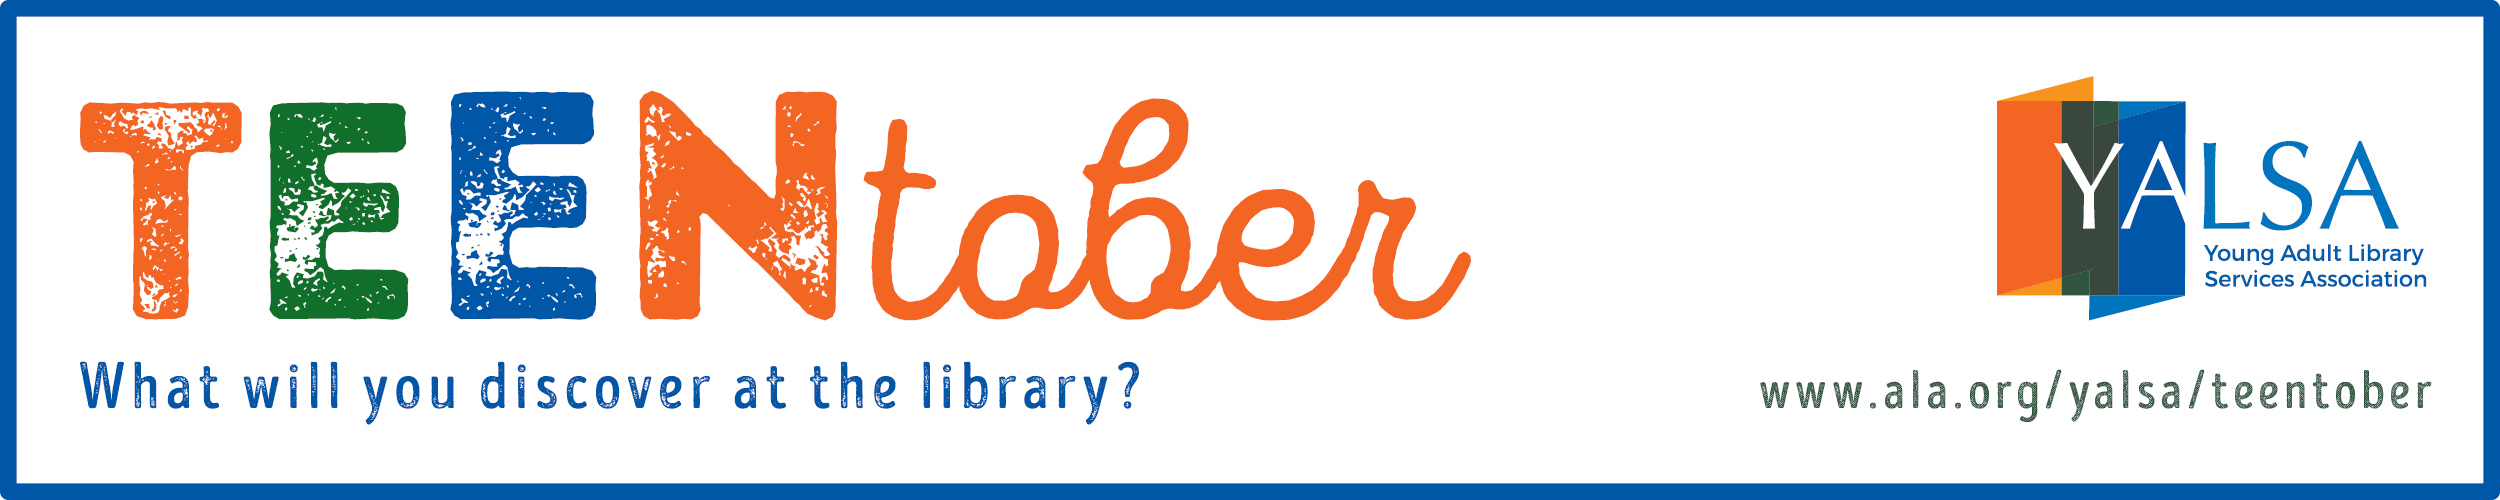 Teentober. What will you discover at the library? www.ala.org/yalsa/teentober